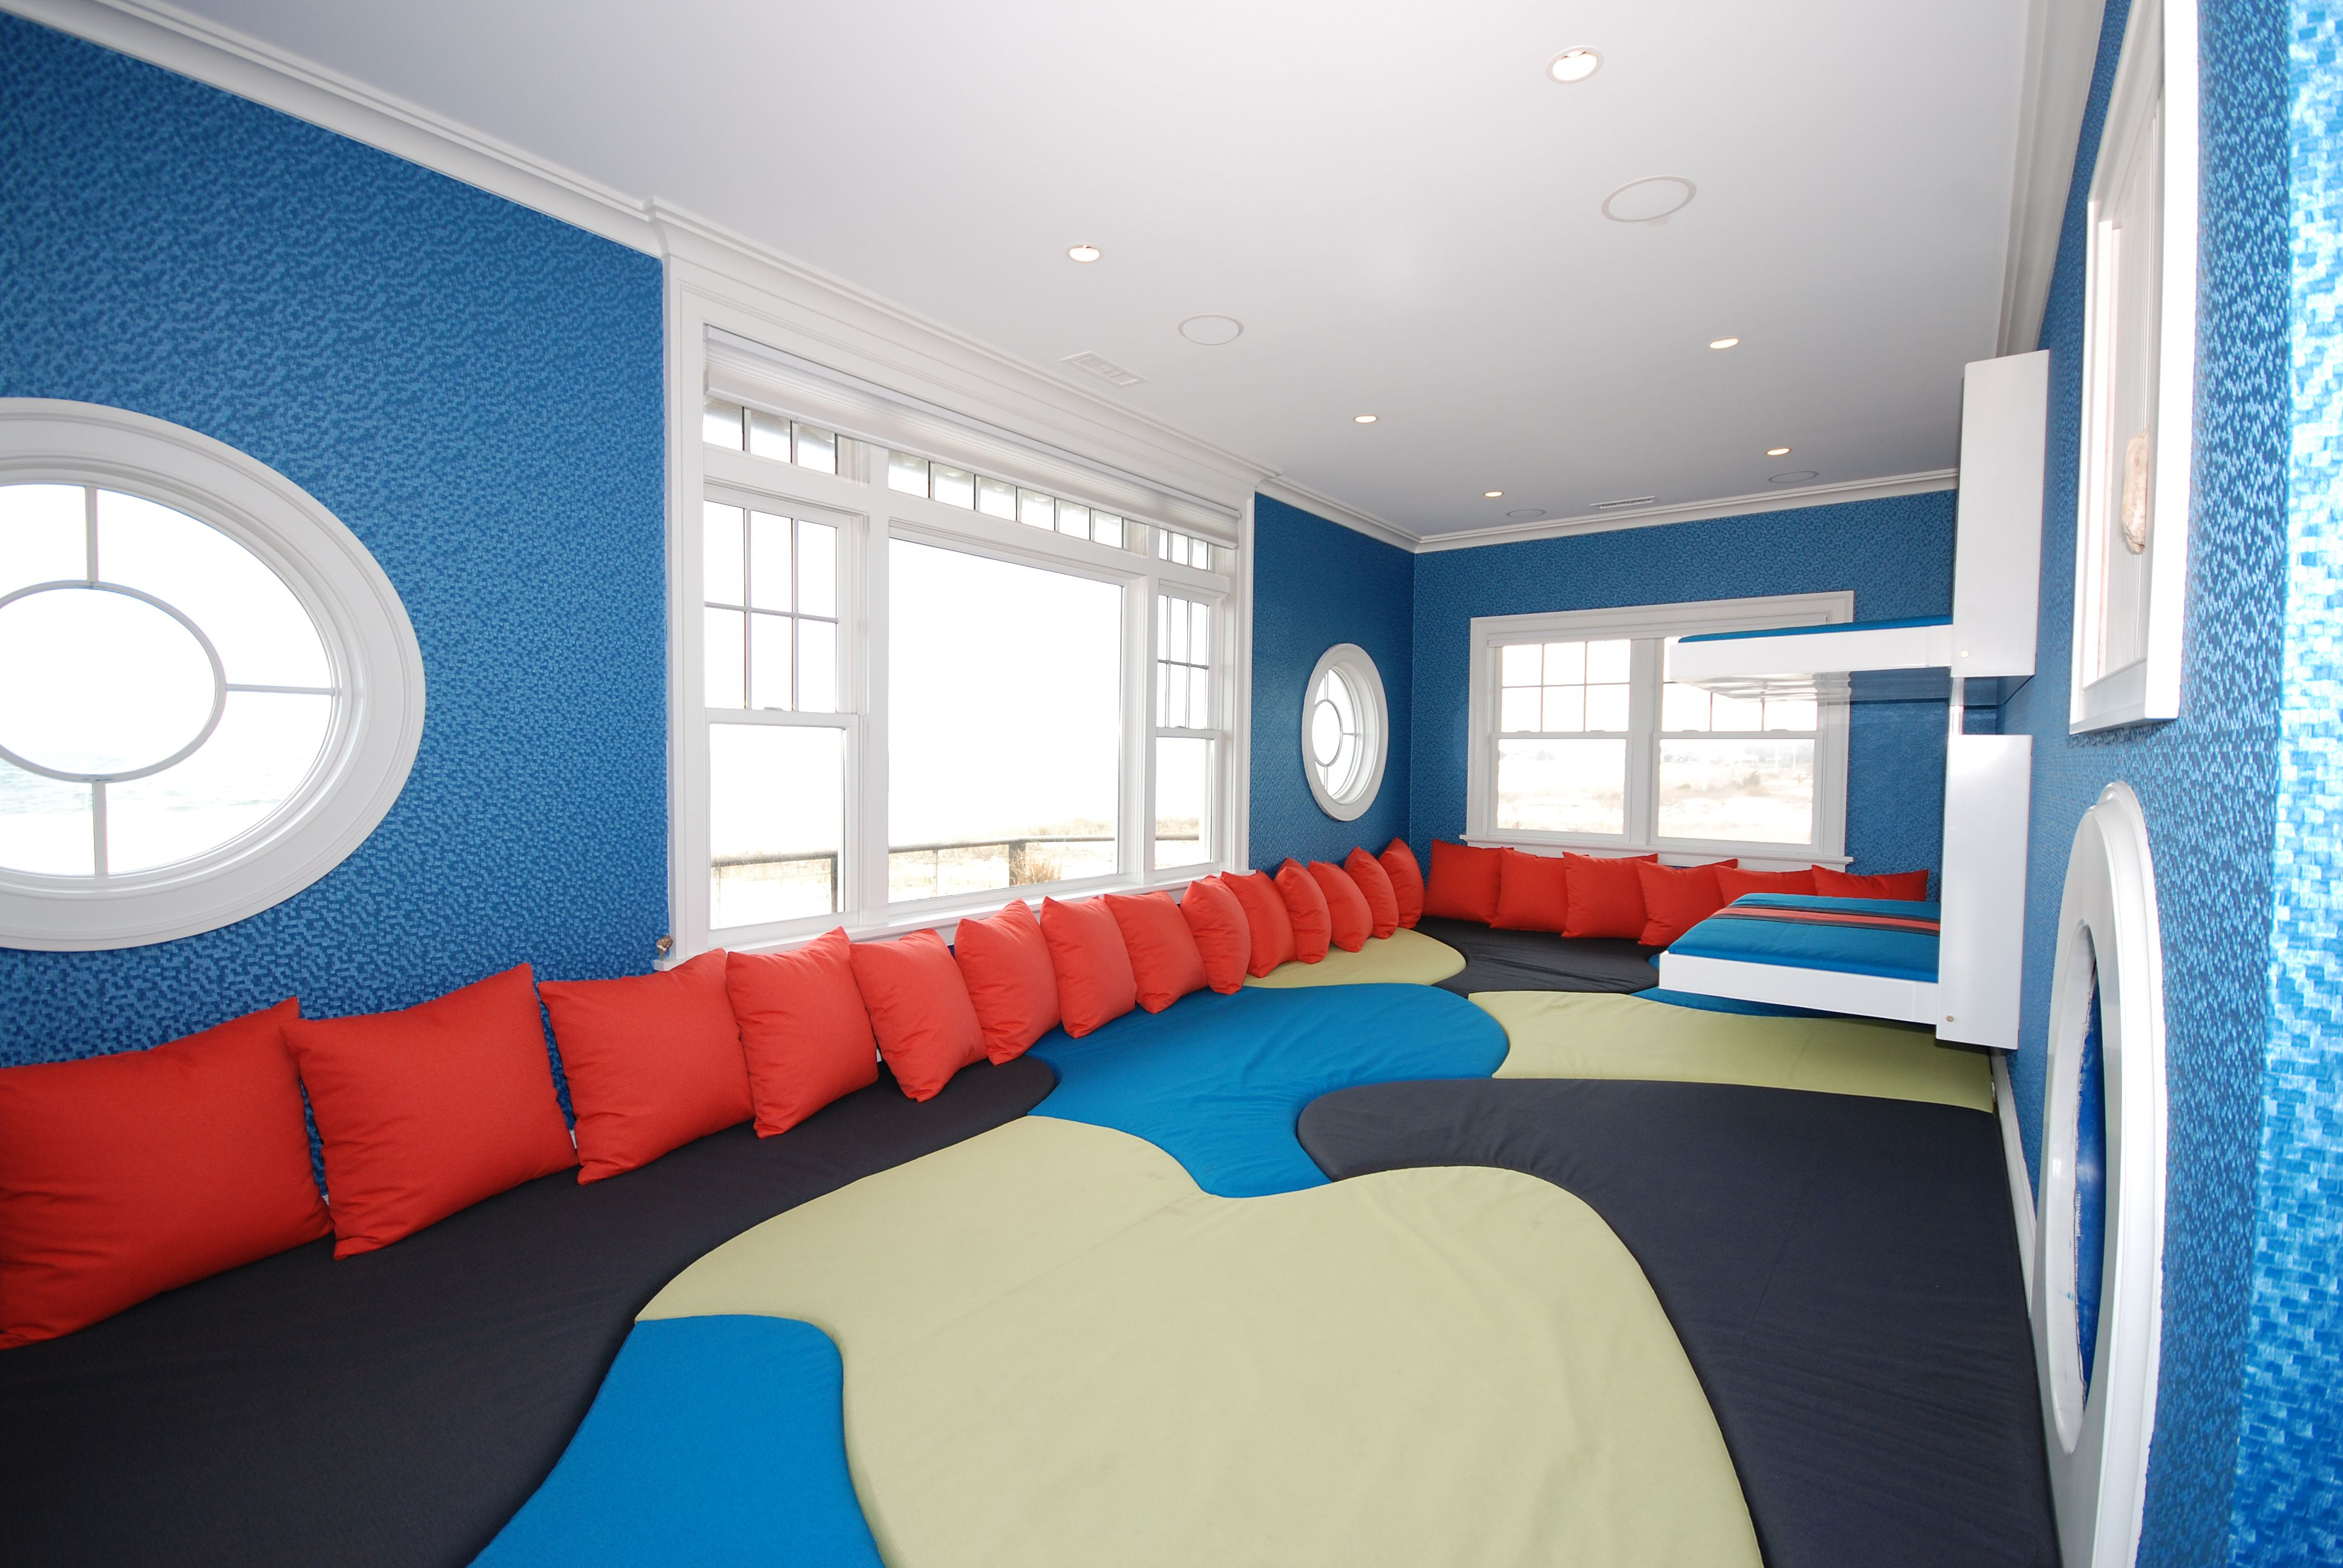 Contemporary Youth Room Lol Padded Room Yep That S About It